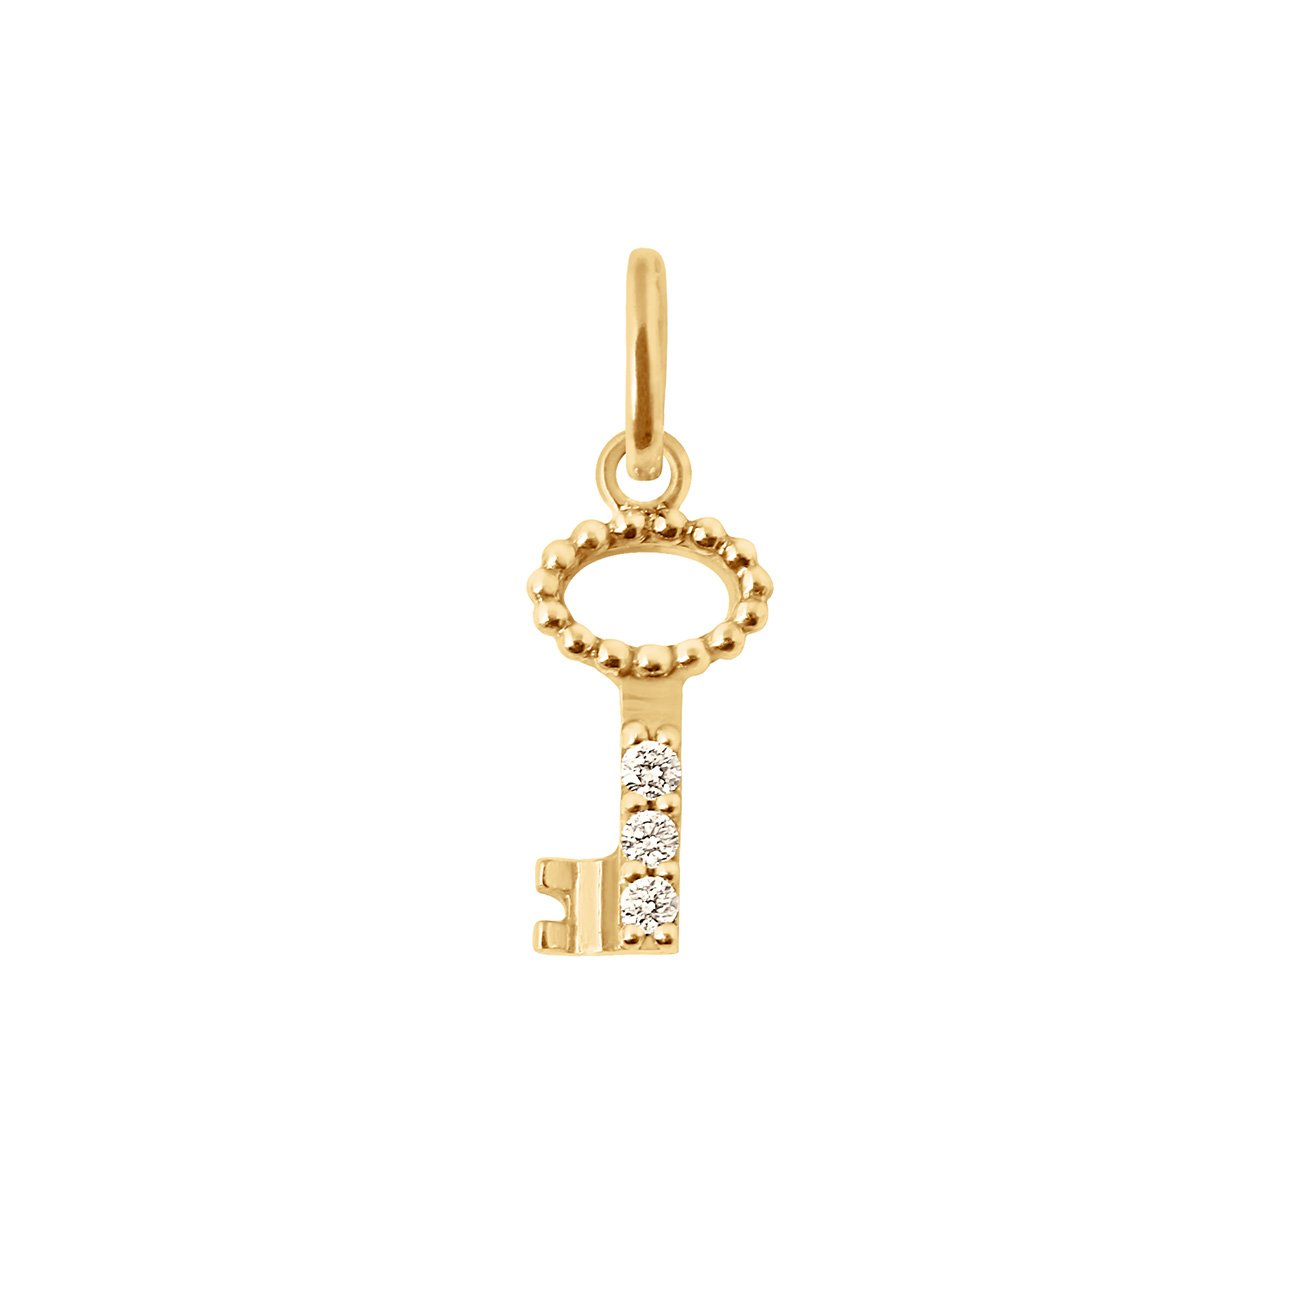 Gigi Clozeau - Key diamond pendant, Yellow Gold